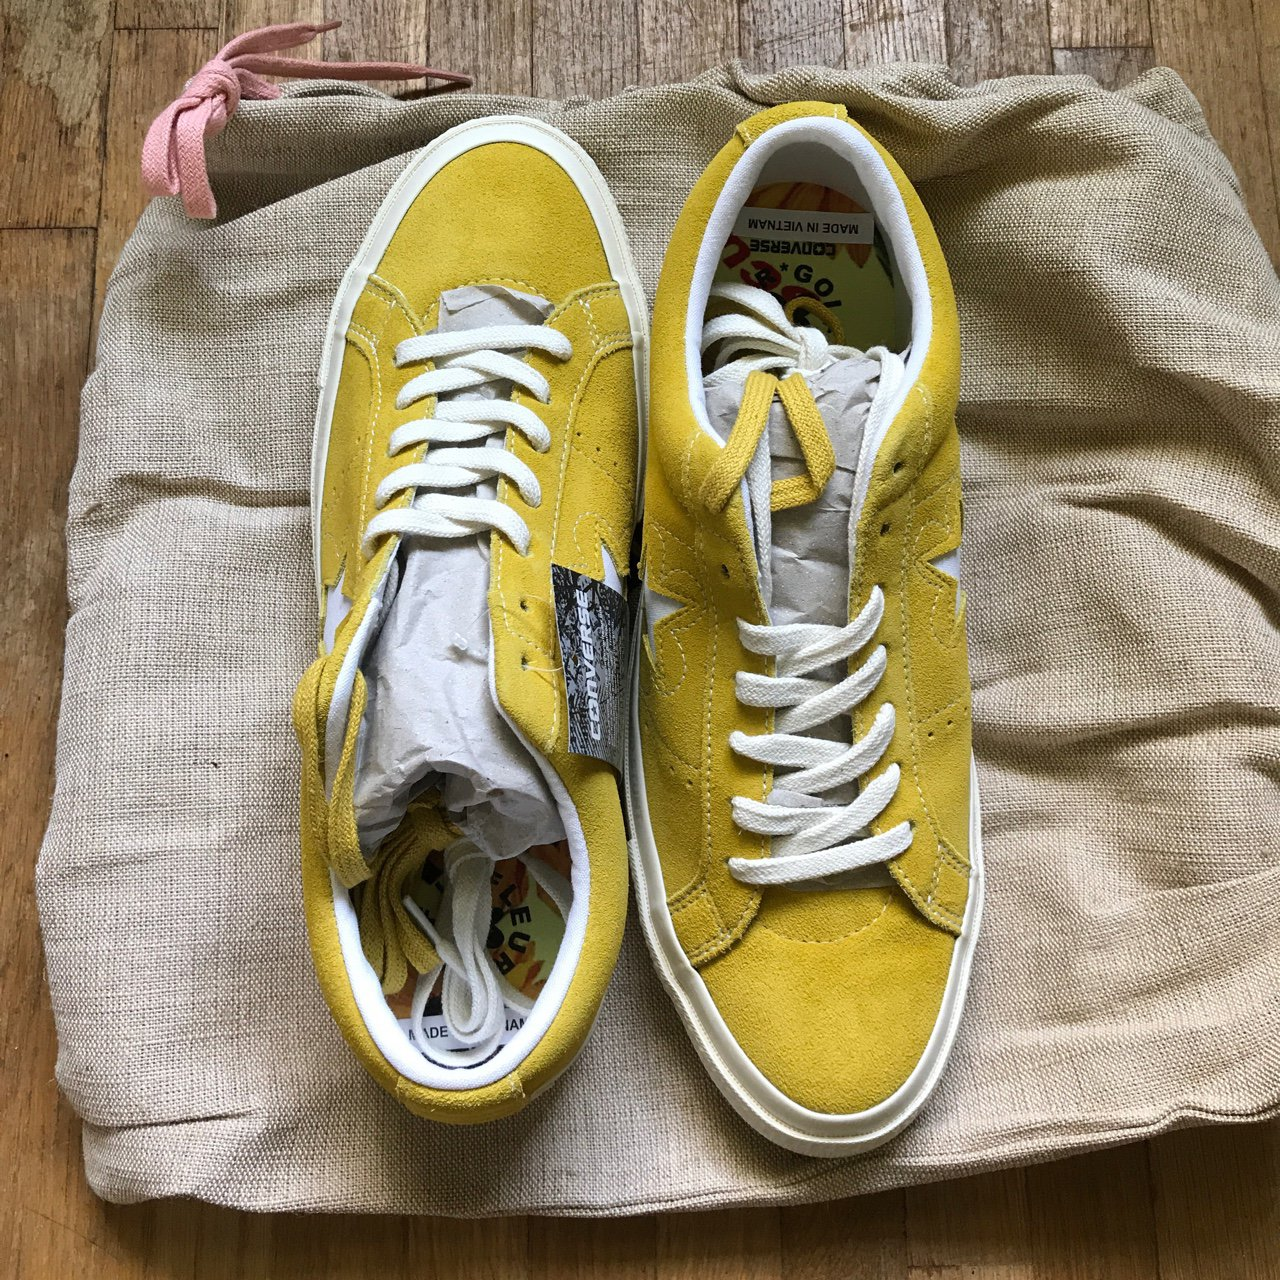 294adec2f0a Converse one star golf le fleur sulphur shoes size new depop jpg 1280x1280  Tyler the creator